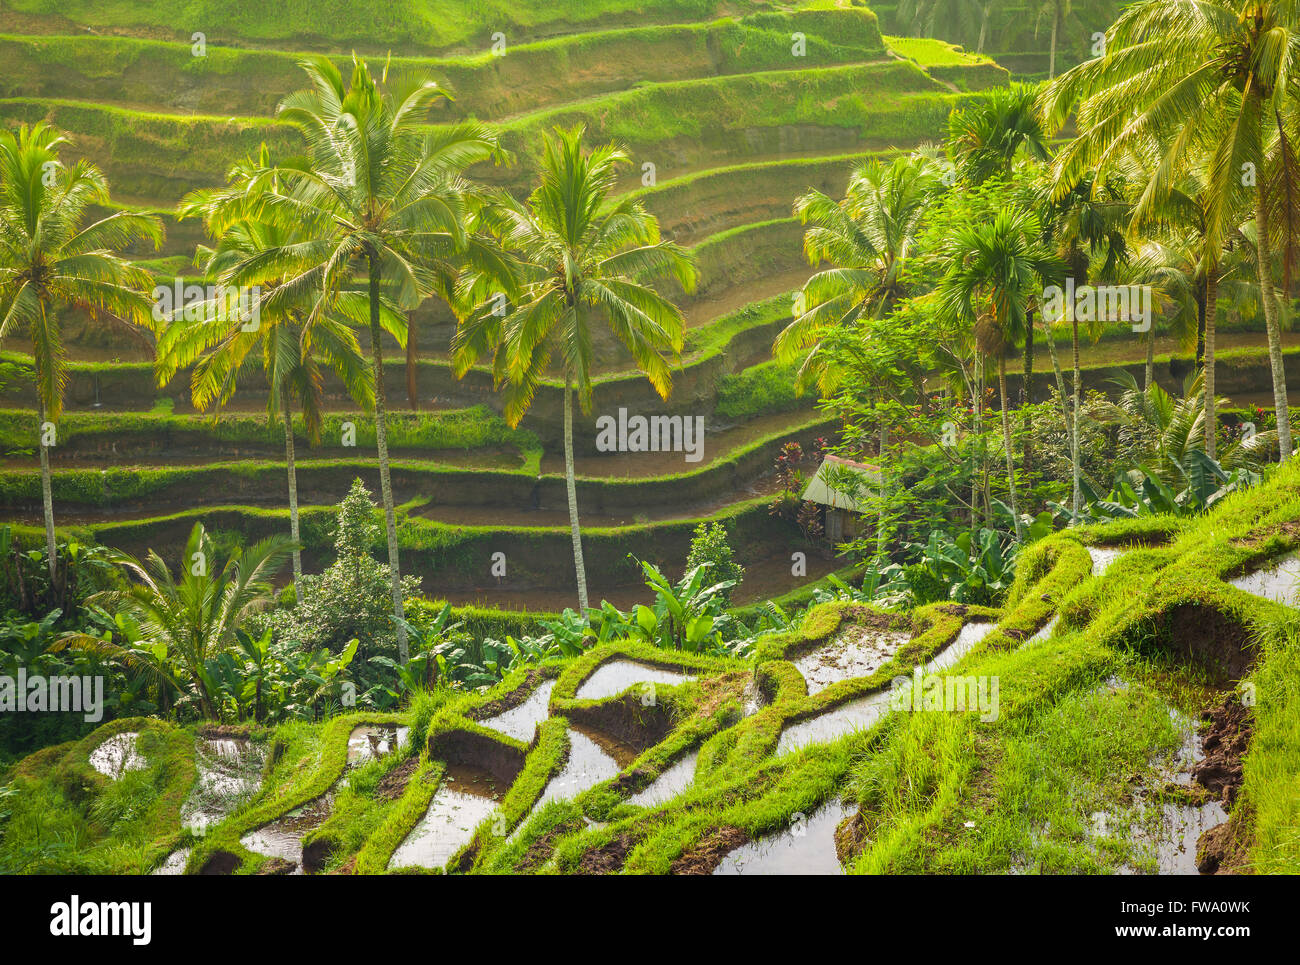 Beautiful rice terraces in the moring light near Tegallalang village, Ubud, Bali, Indonesia. - Stock Image